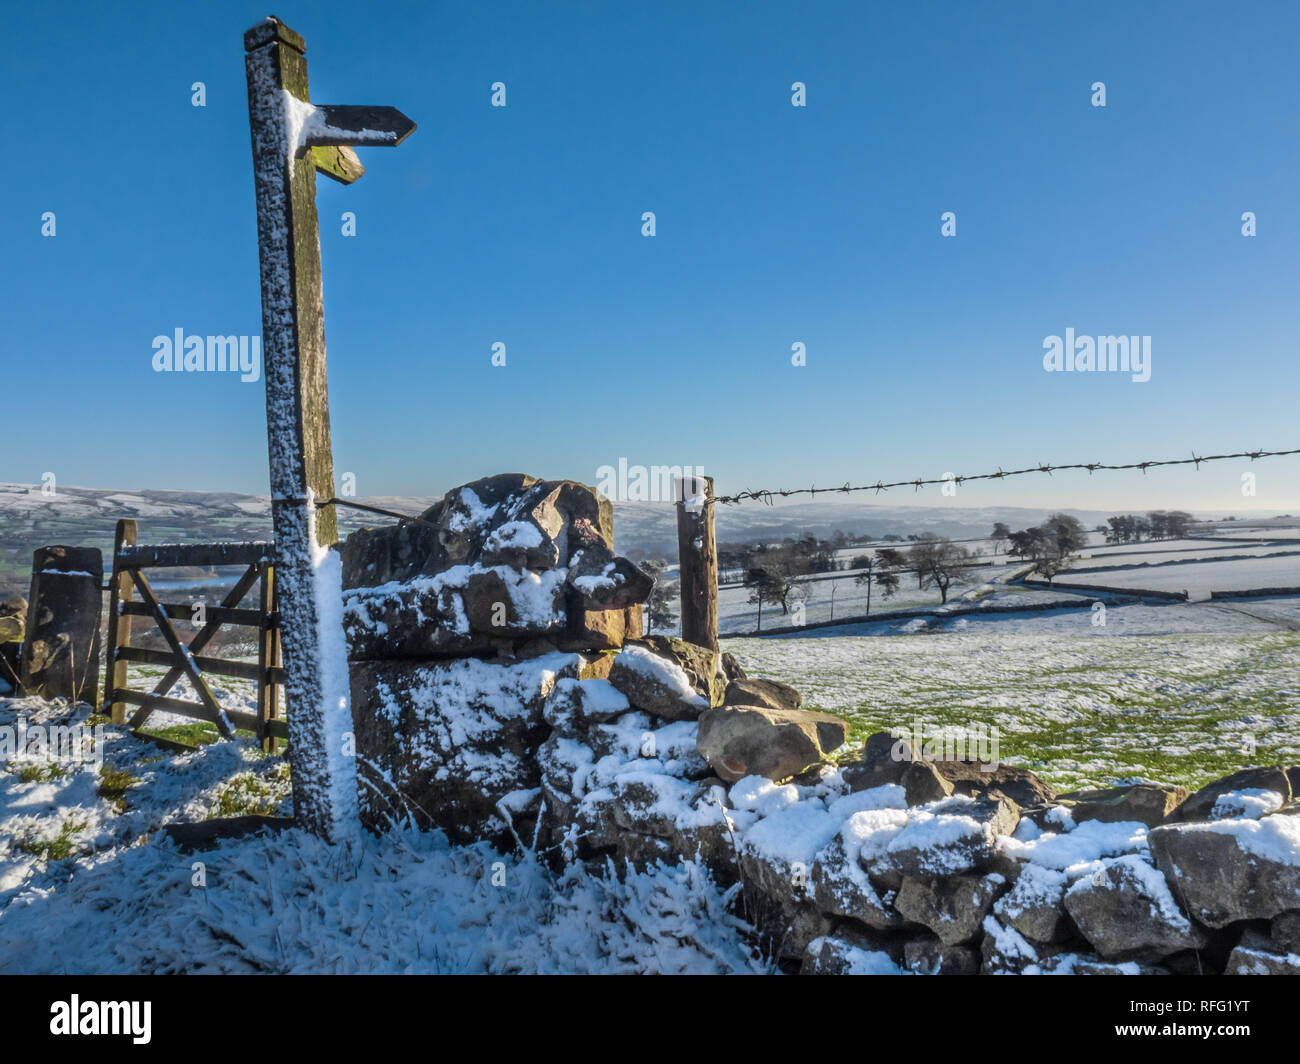 Snowy Scene with Public Footpath Sign. Staffordshire Moorlands, UK - Stock Image